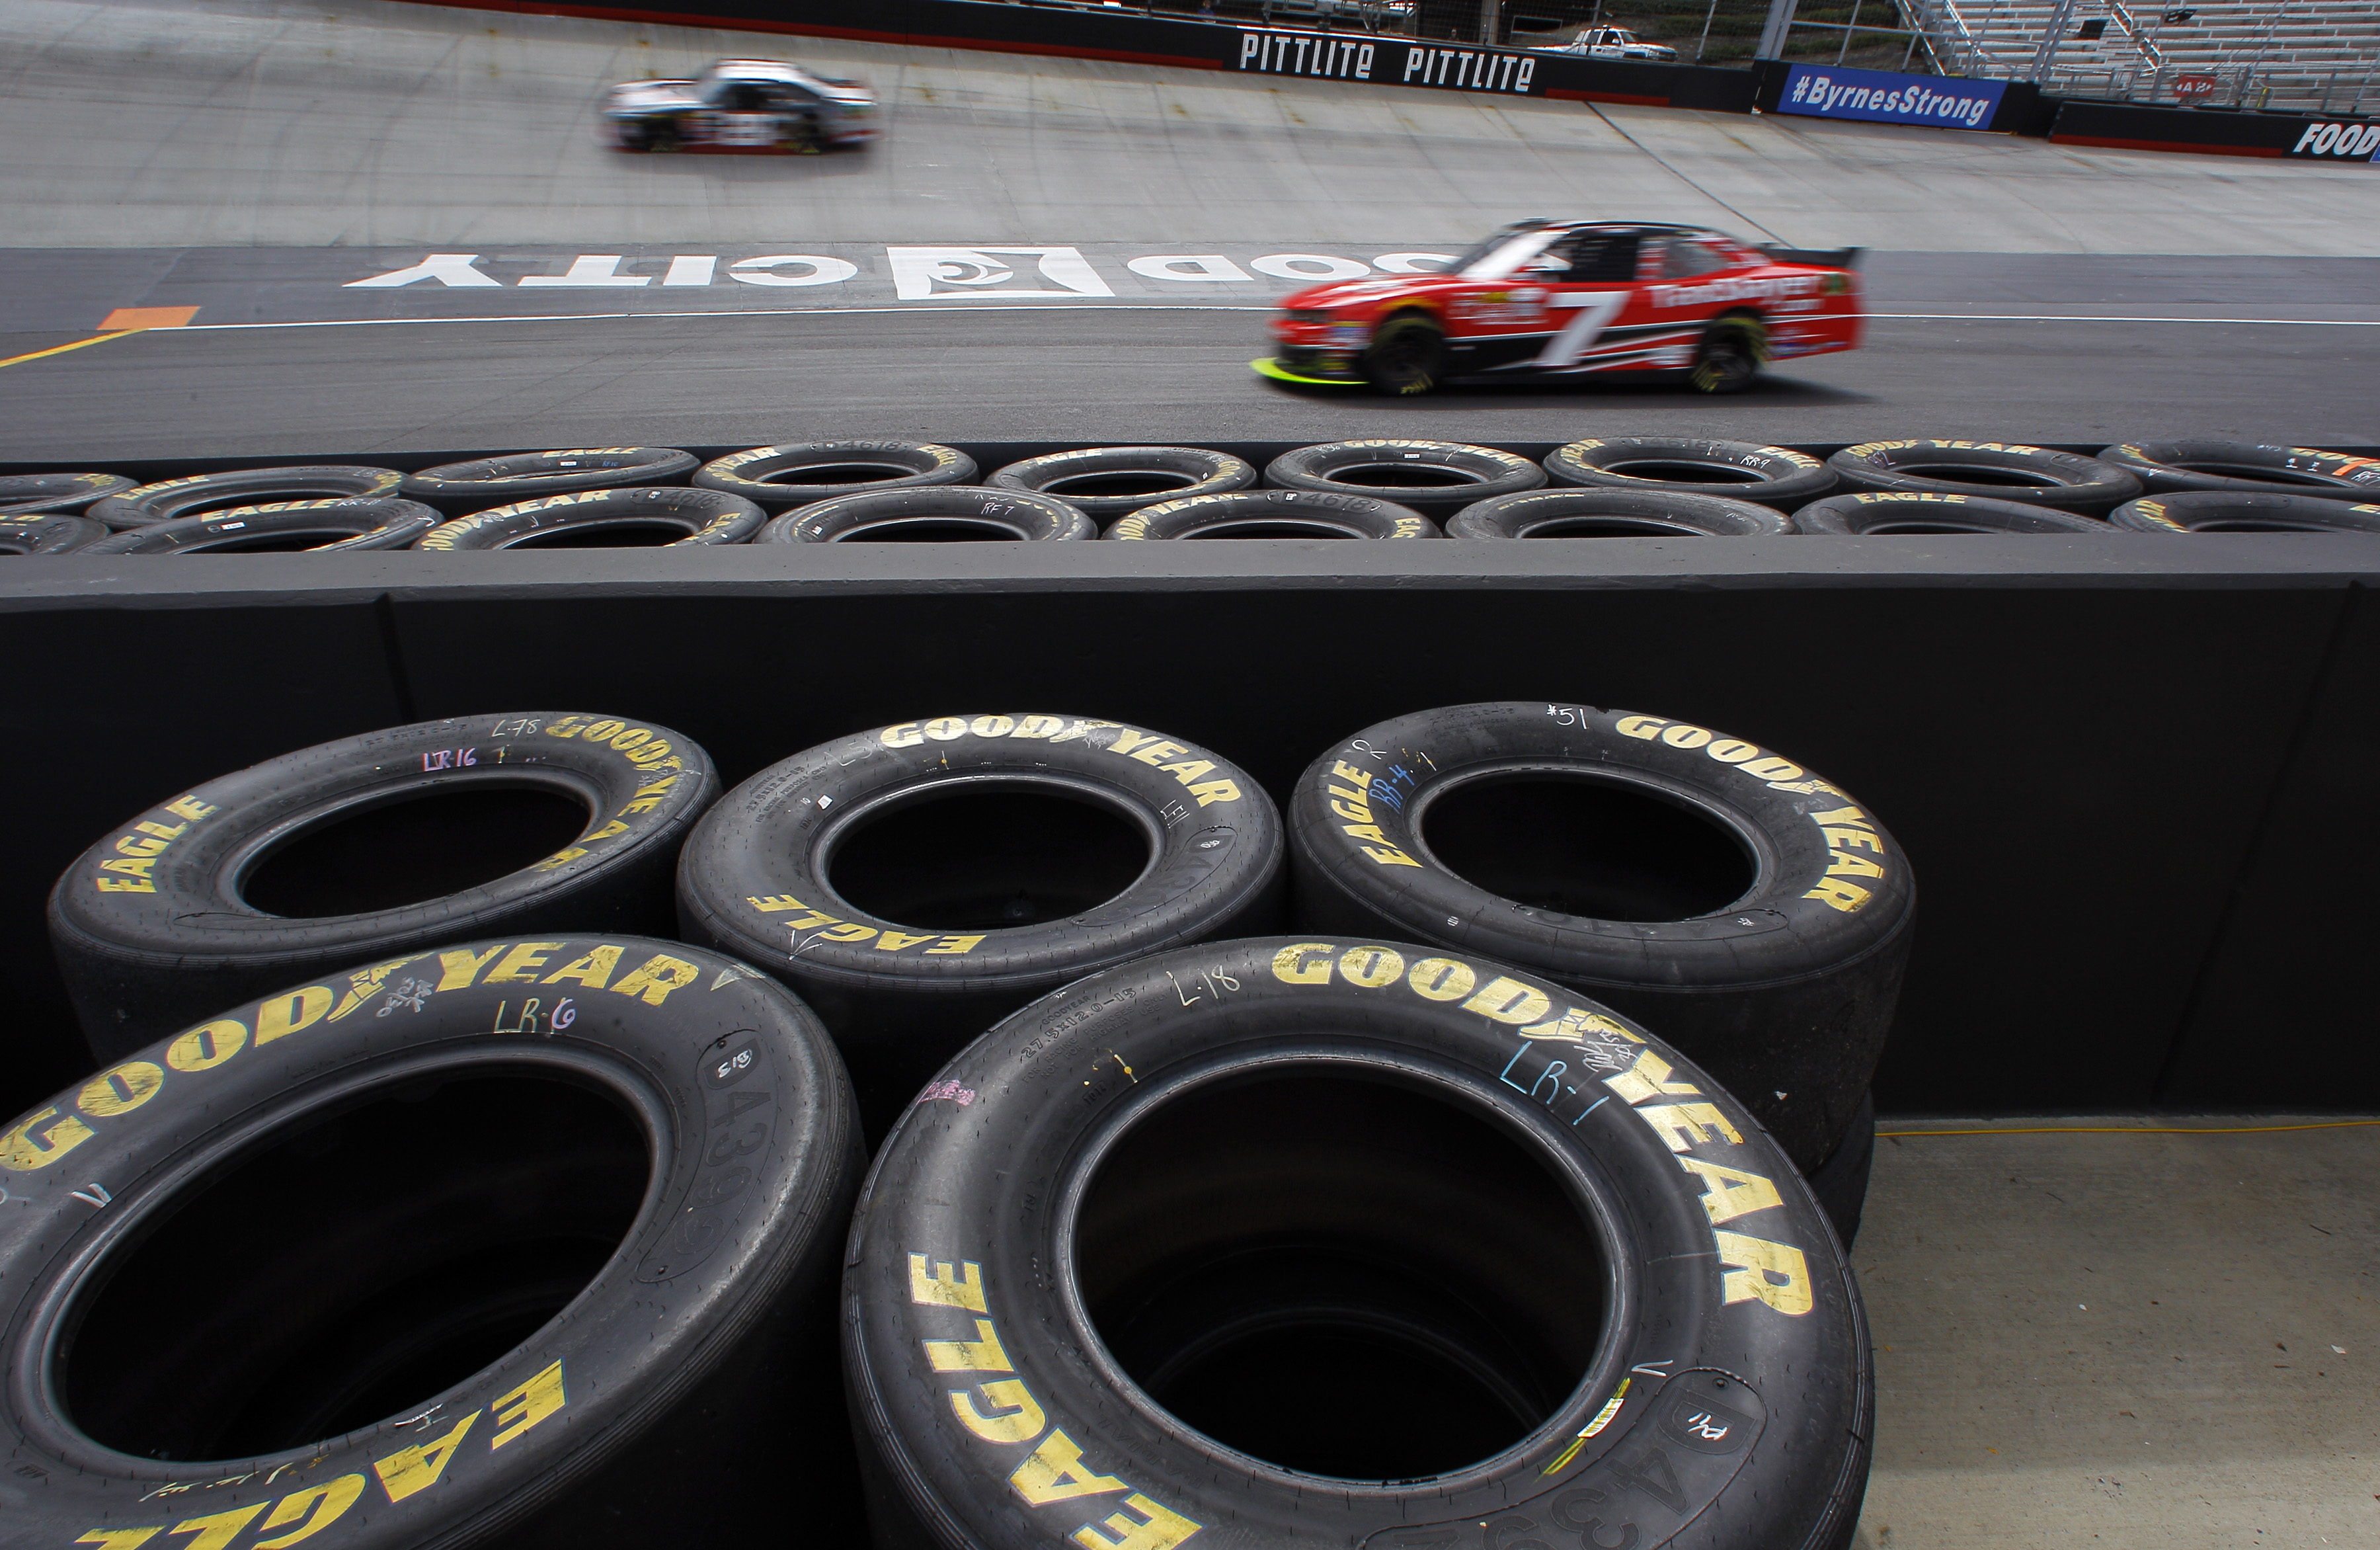 Driver Regan Smith (7) enters the track as another car passes during practice for a NASCAR Xfinity Series auto race at Bristol Motor Speedway on Friday, April 17, 2015, in Bristol, Tenn. (AP Photo/Wade Payne)